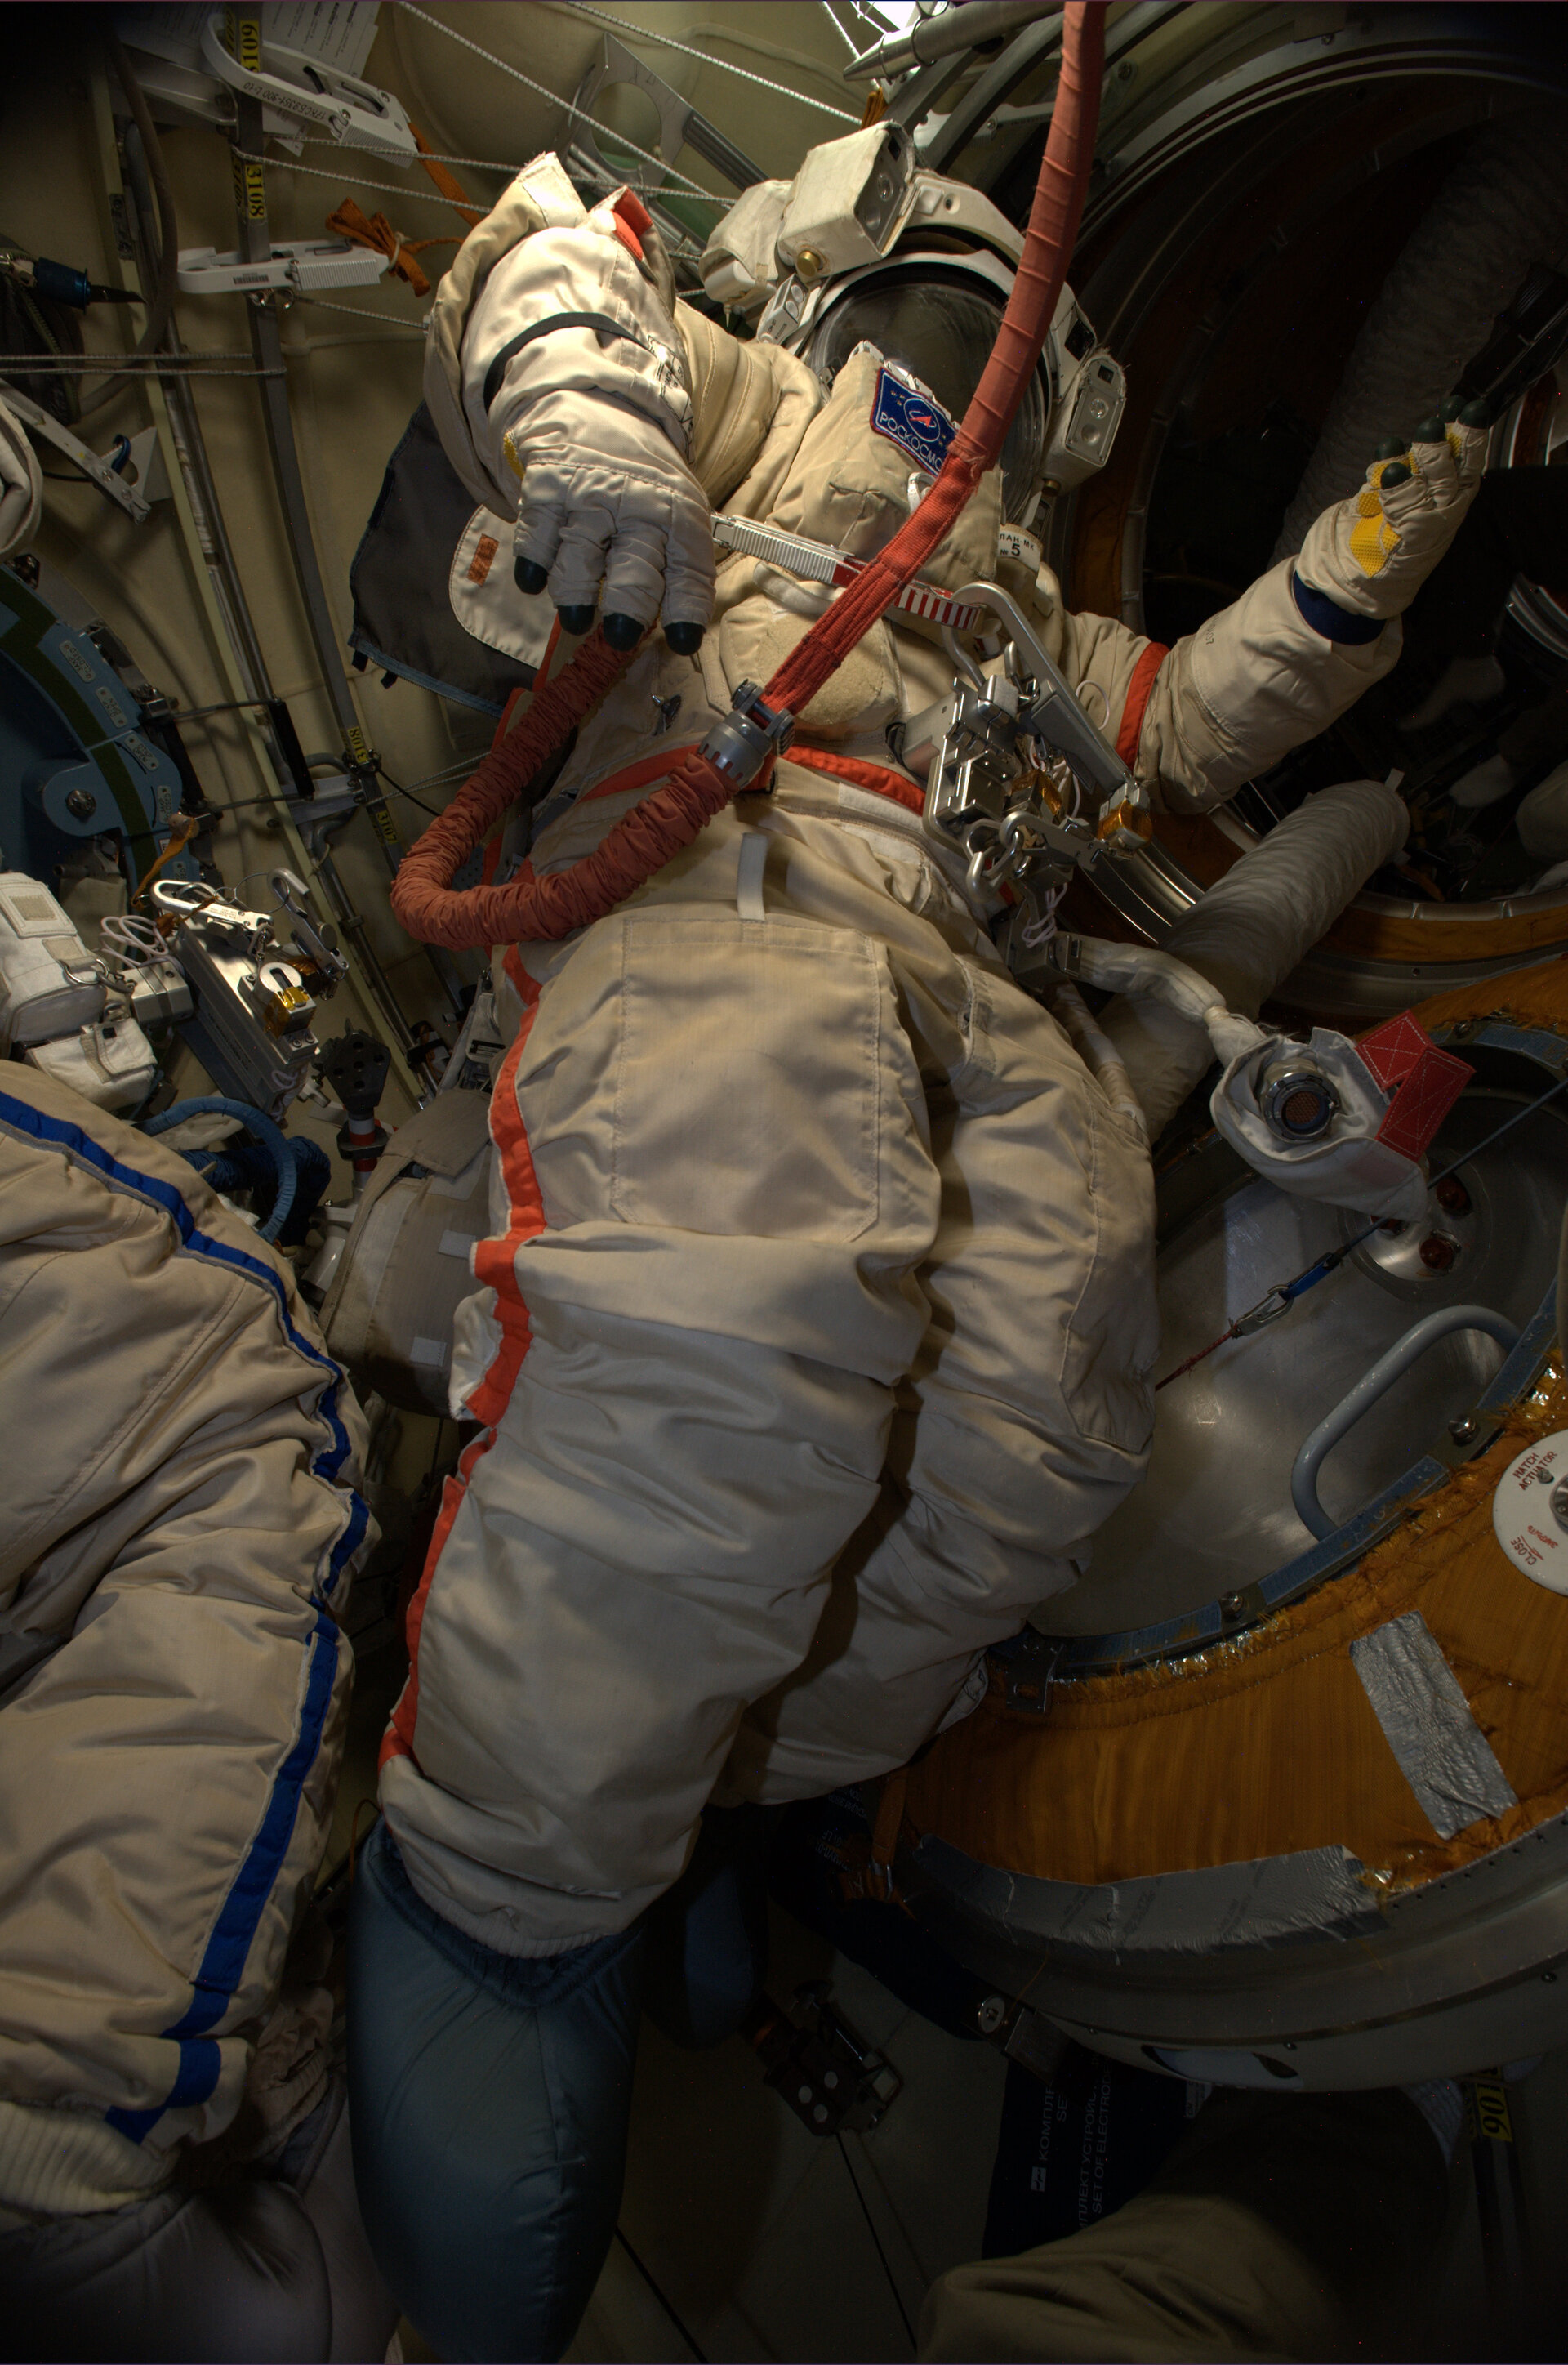 Orlan spacesuit on Space Station